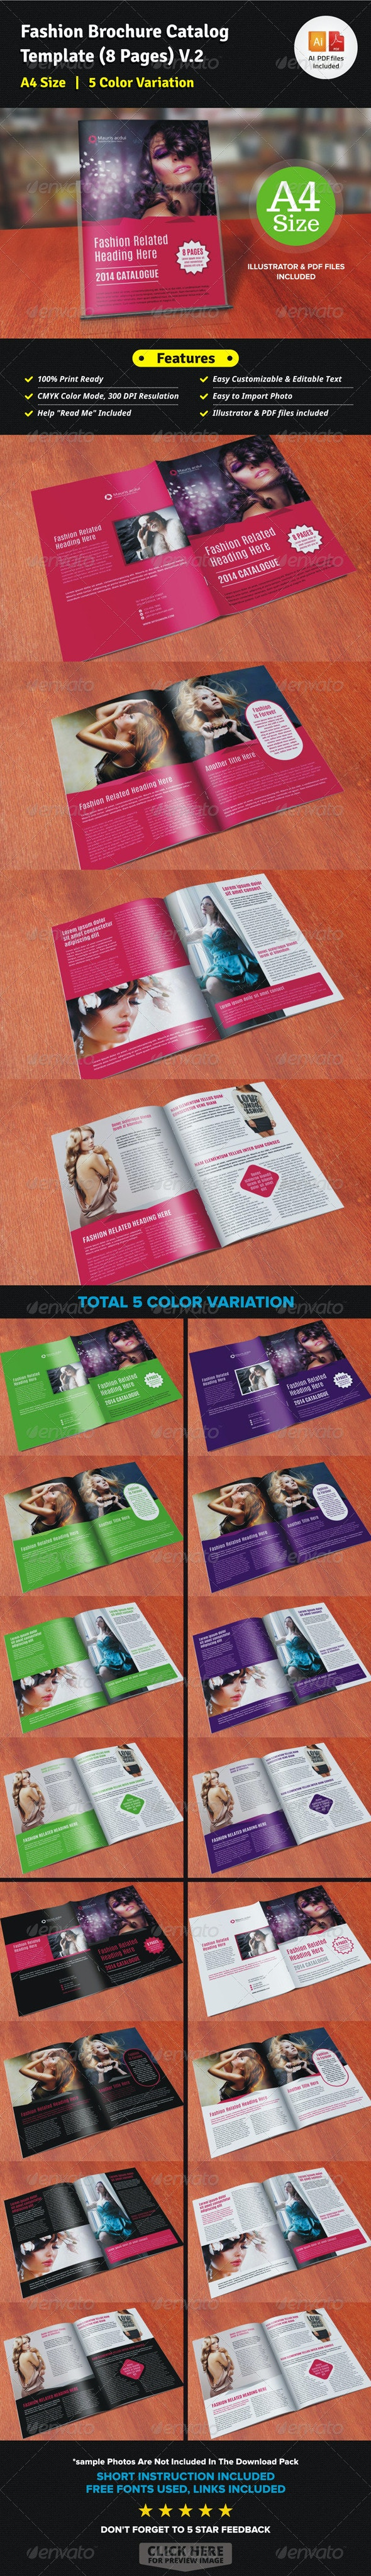 Fashion Brochure Catalog Template (12 Pages) V2 - Corporate Brochures